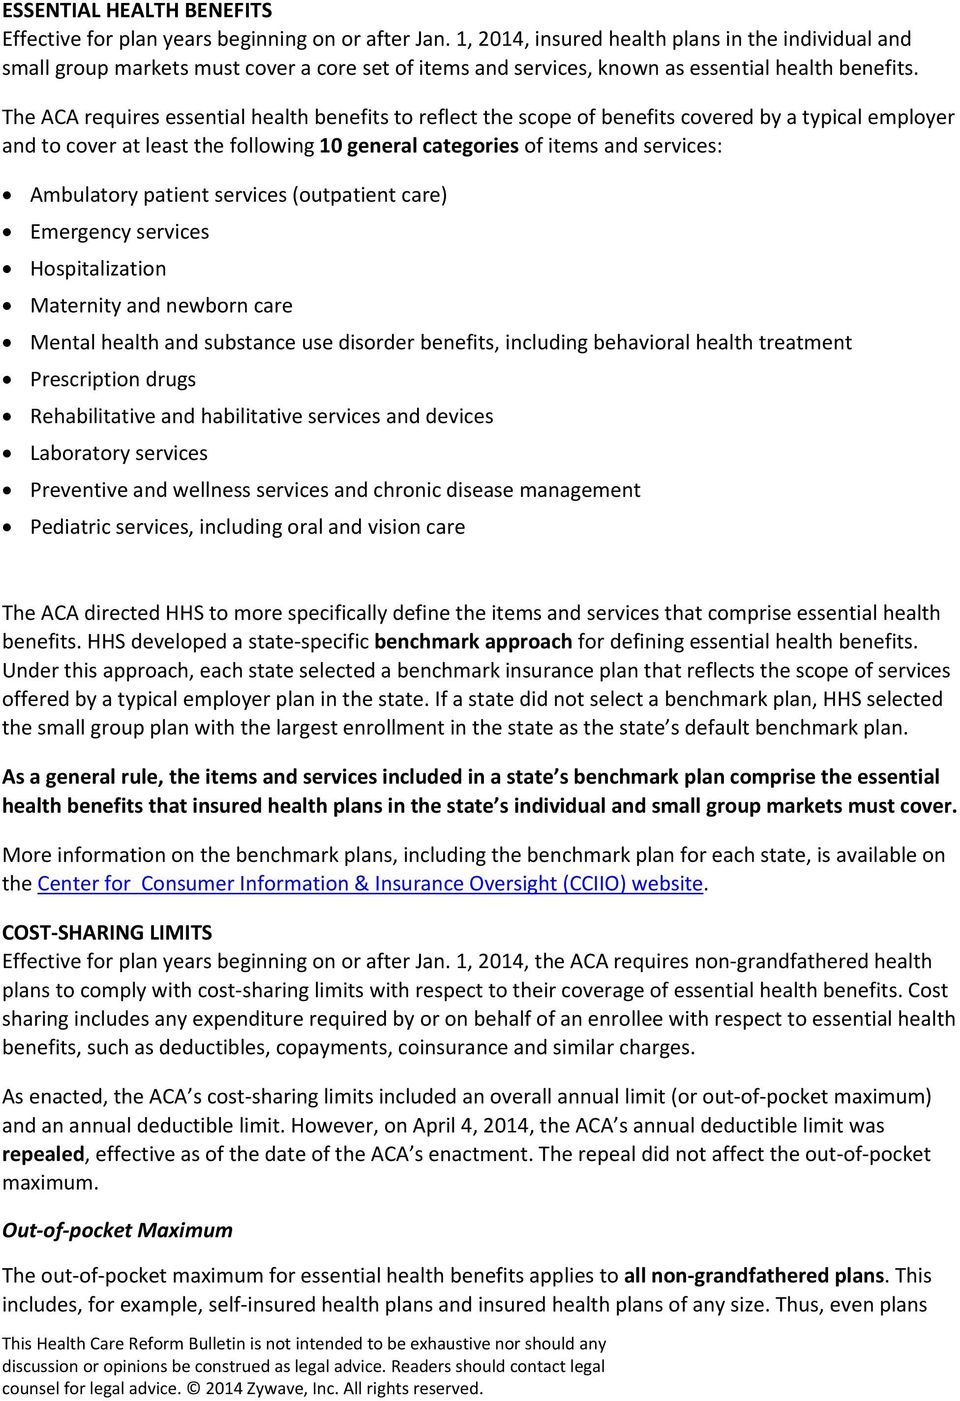 The ACA requires essential health benefits to reflect the scope of benefits covered by a typical employer and to cover at least the following 10 general categories of items and services: Ambulatory